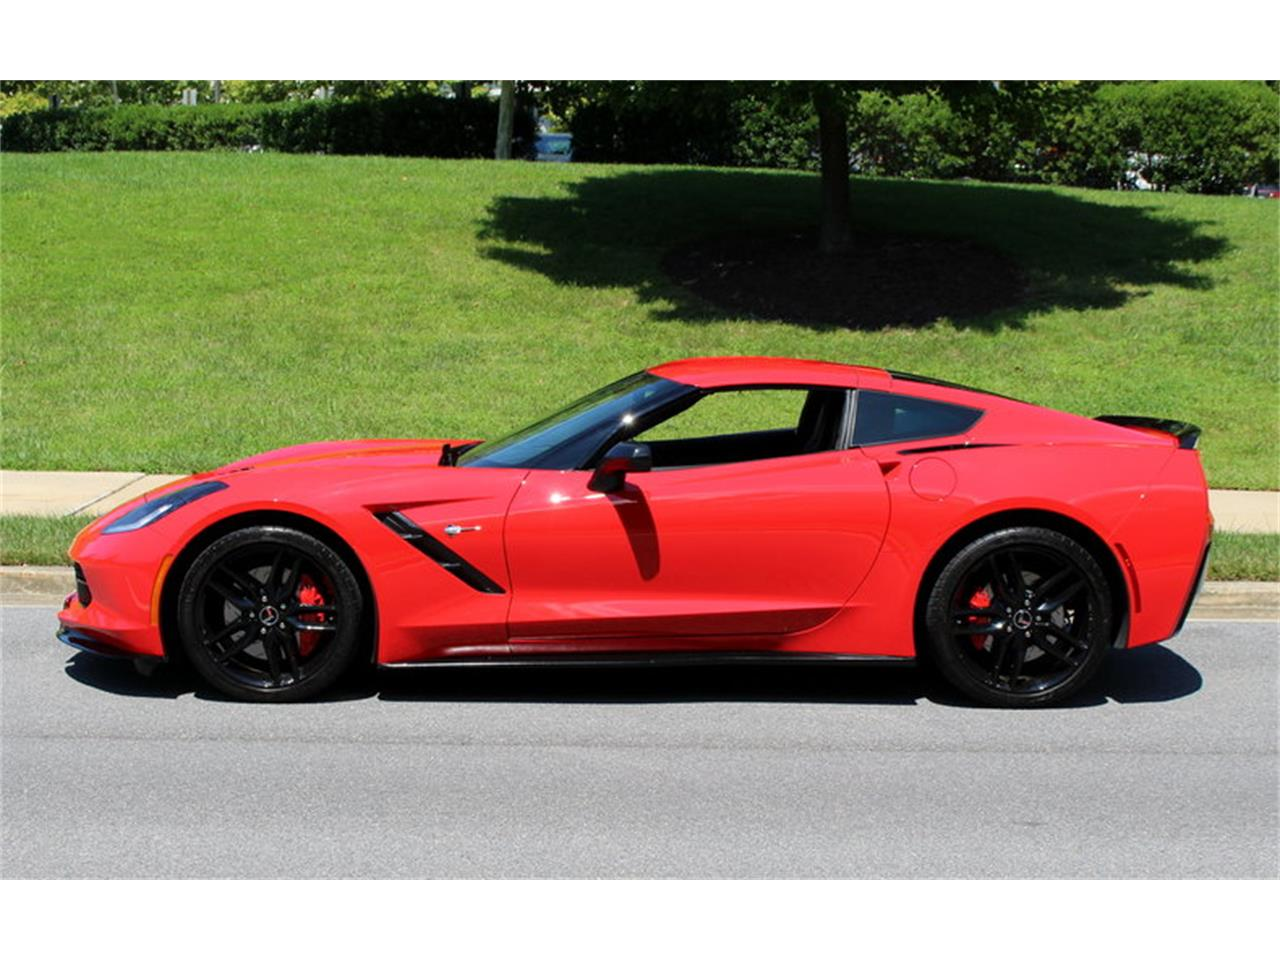 Large Picture of '14 Corvette located in Rockville Maryland - $49,990.00 - MGRV